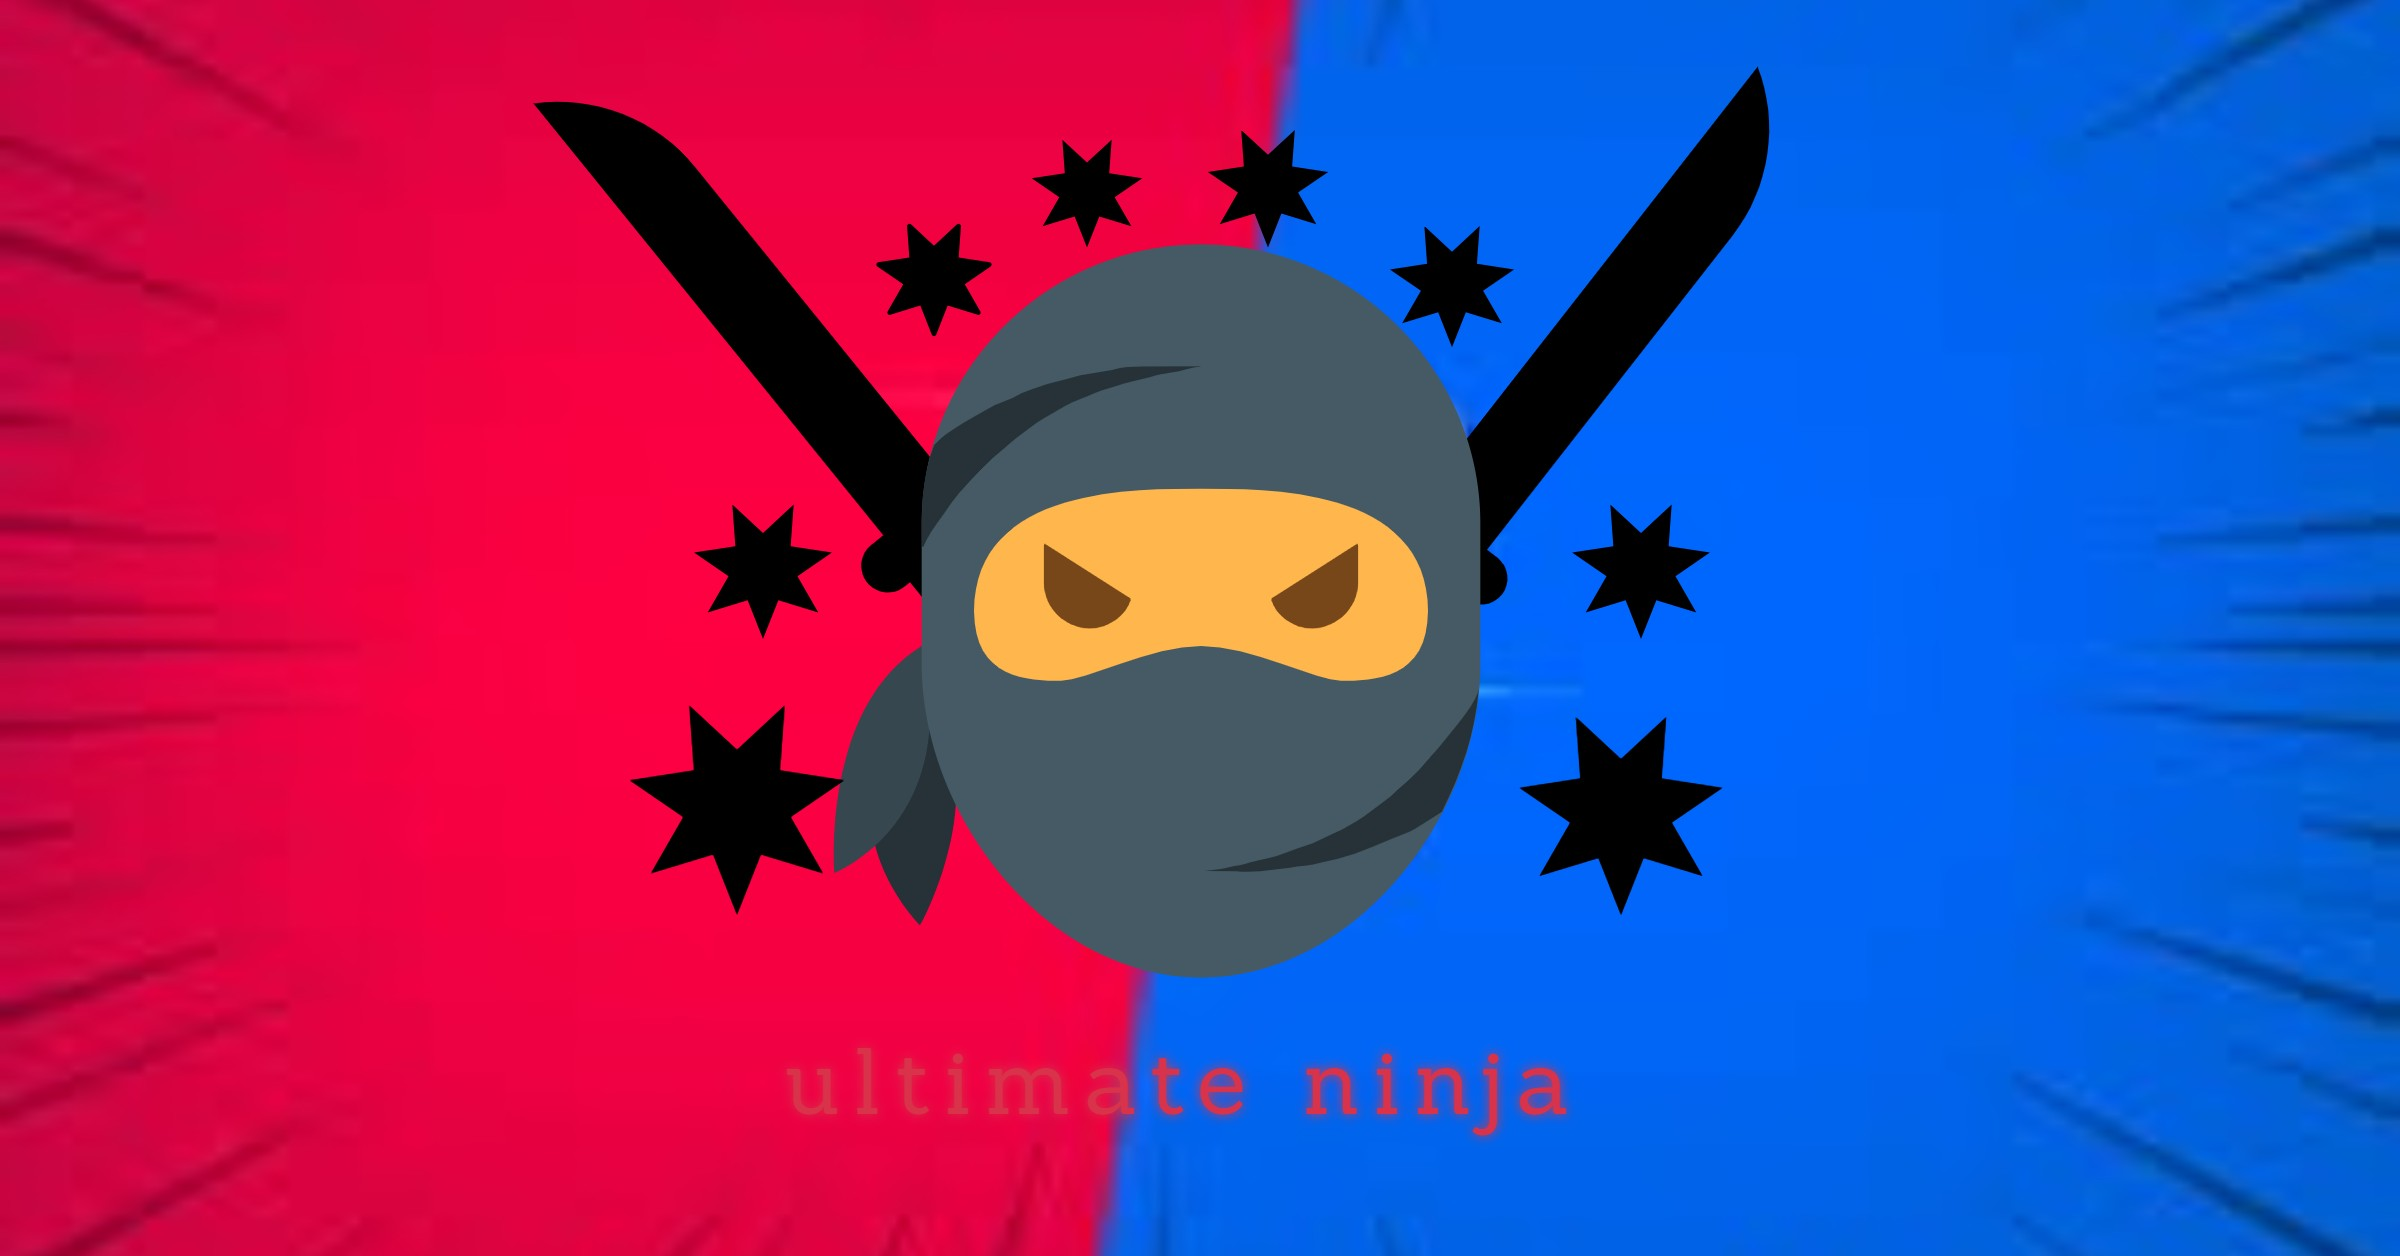 this is a ninja logos,  Wait for more large logos.